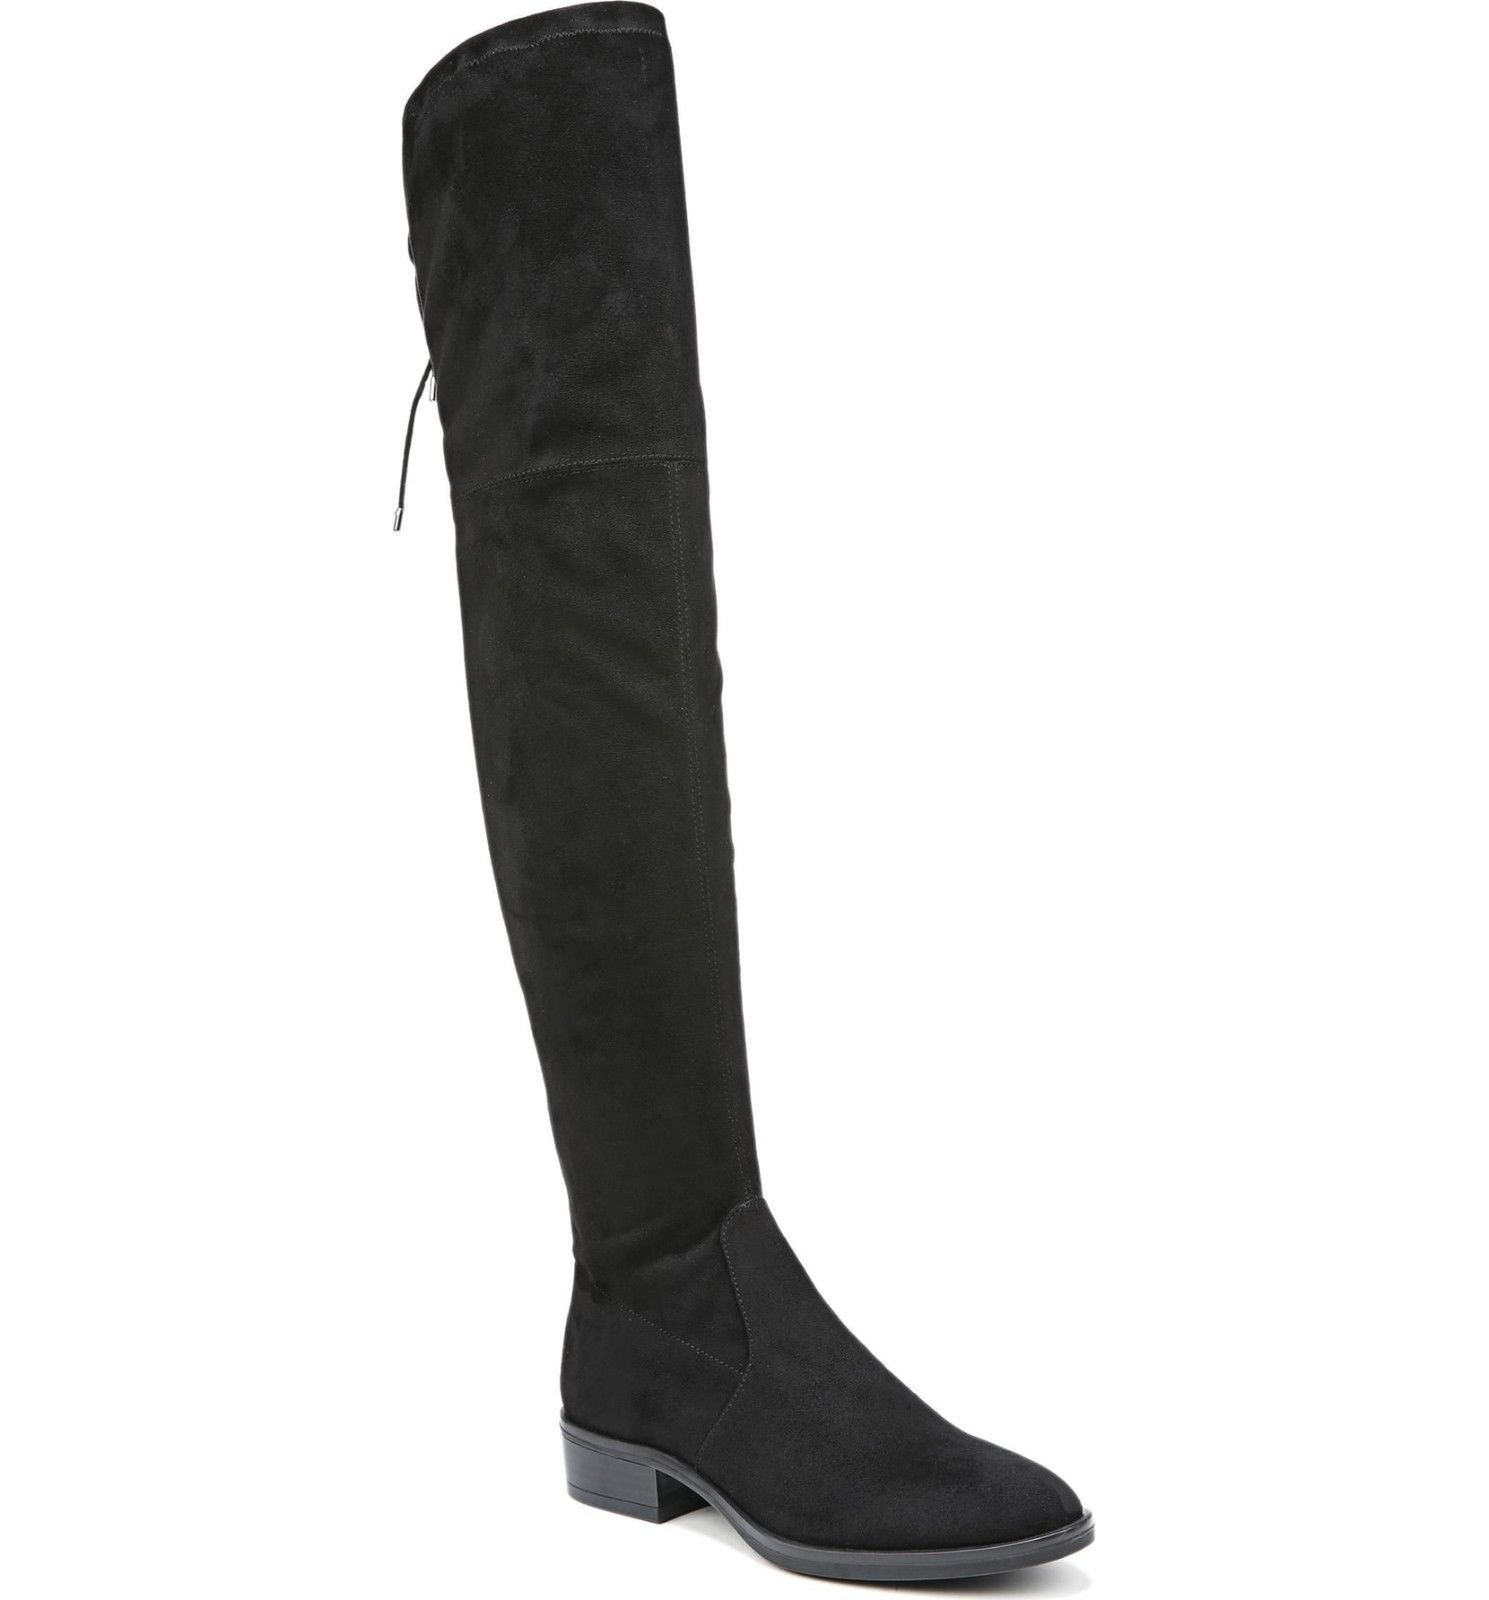 57df7aa2b25135 Sam Edelman Paloma Tall Suede Over The Knee OTK Boots US 5.5 ❤  edelman   paloma  tall  suede  over  knee  boots  Verano  Primaverales  film   Aesthetic ...